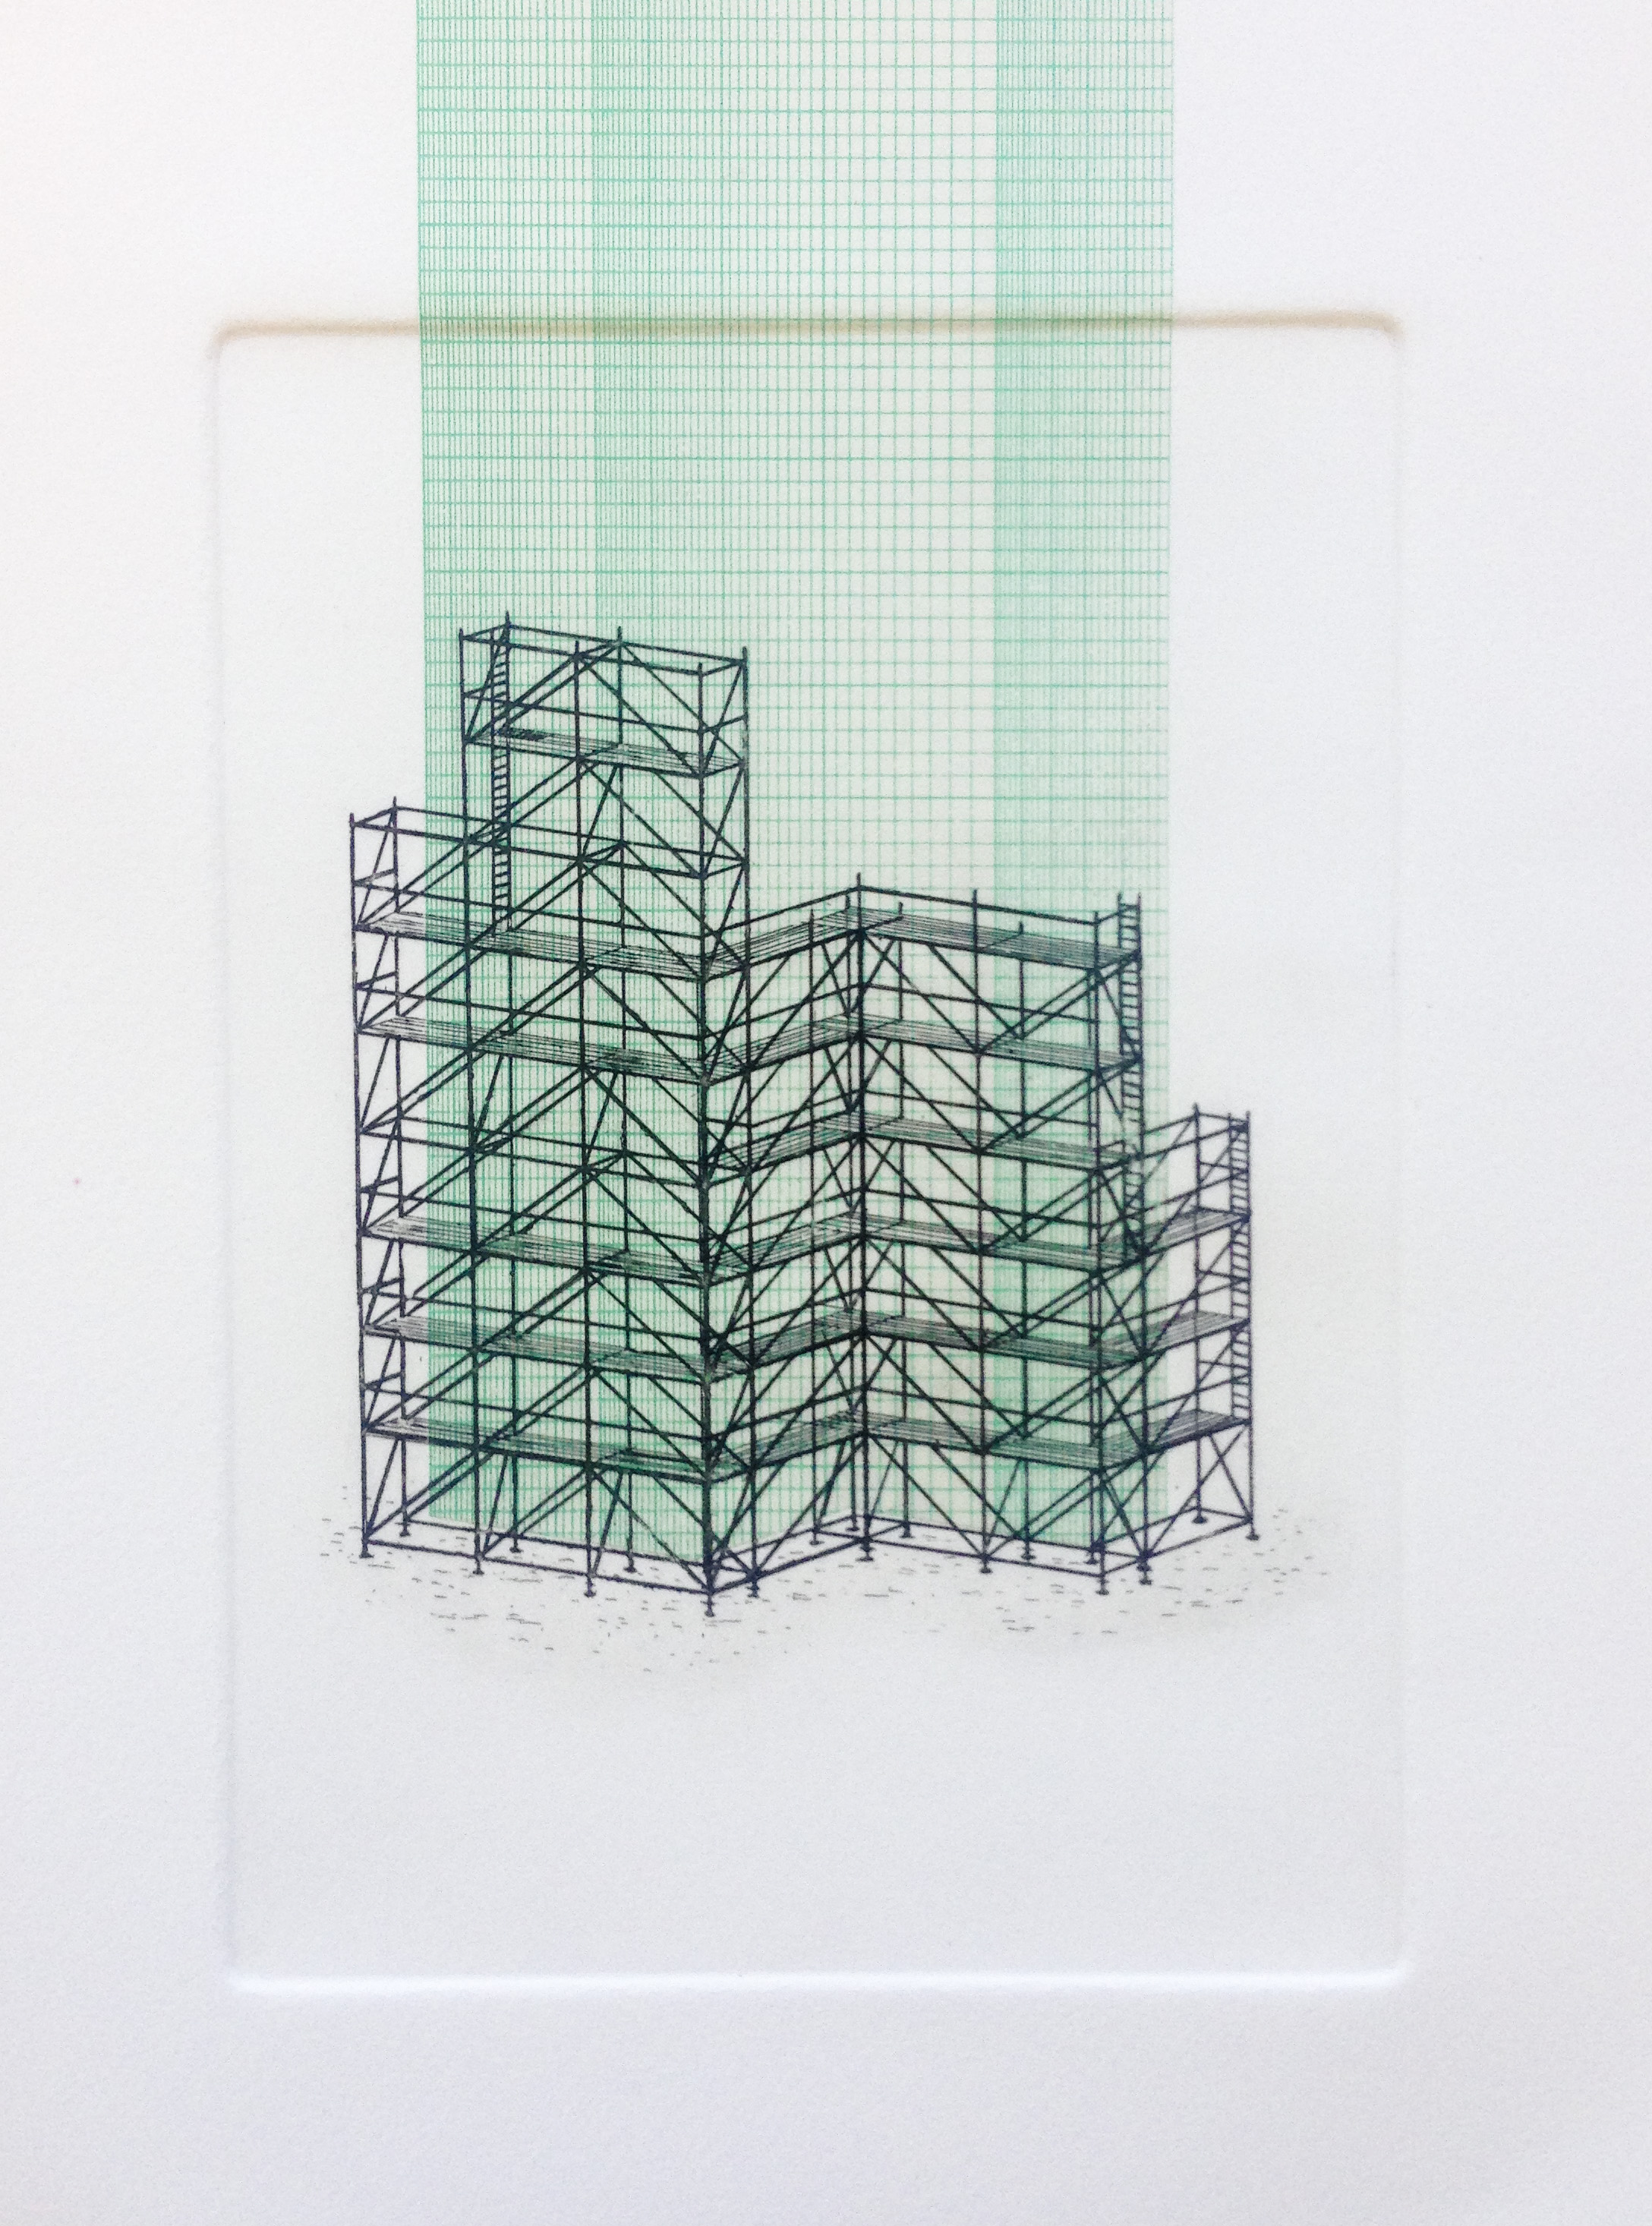 "CHRIS FOSTER  Scaffold #4 2018 Intaglio print with Chine-collé on paper 7"" x 12"", Framed Edition of 5  Estimated Value: $400  'Scaffold #4' is part of an ongoing series of prints and sculptures that explore scaffolding, abstraction and the build environment."